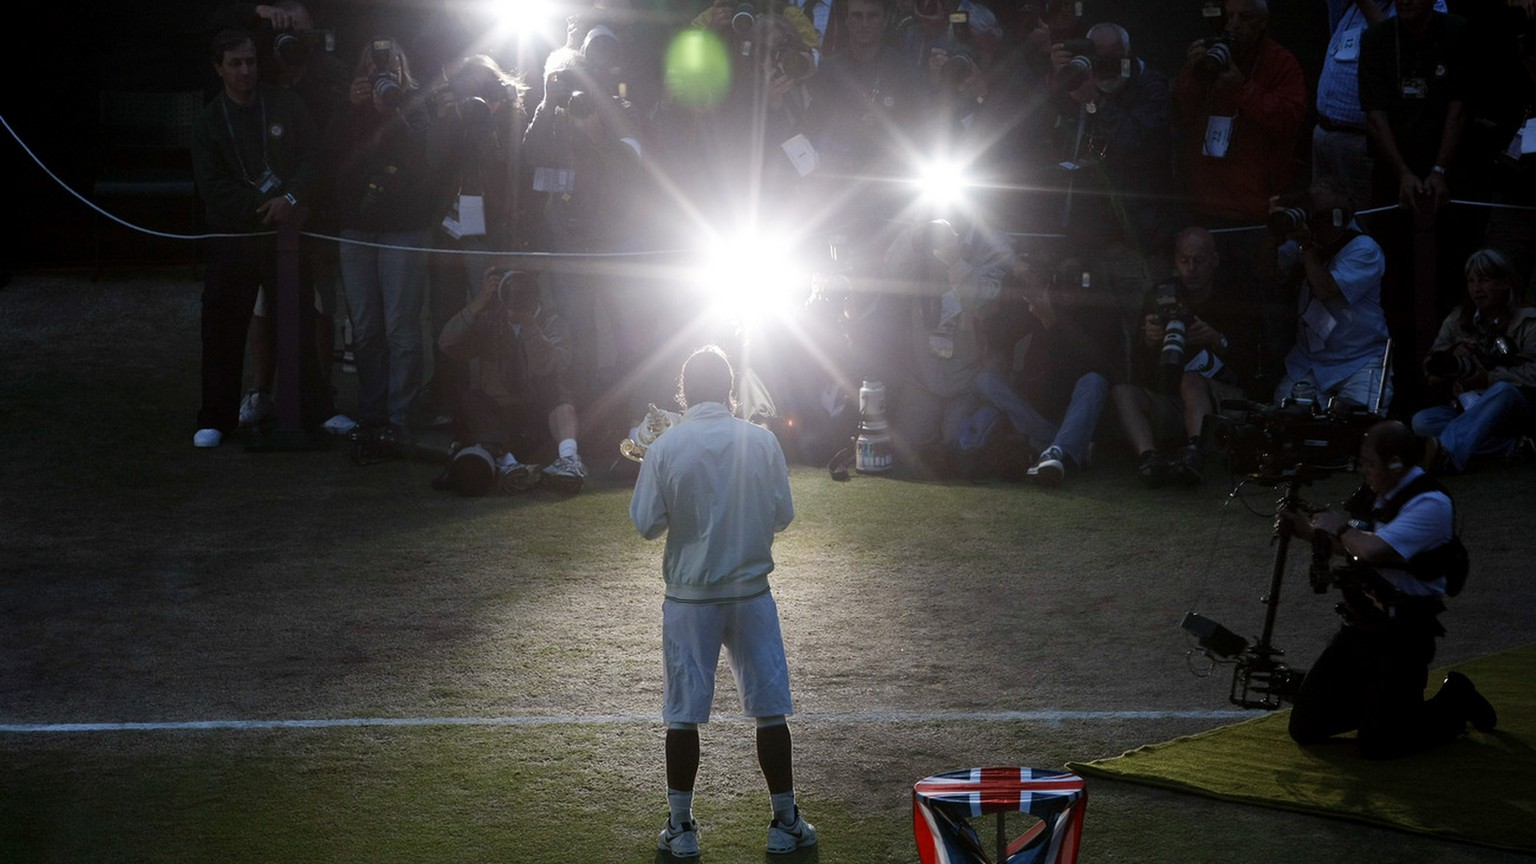 Spain's Rafael Nadal poses for photographers with his trophy after his win over Switzerland's Roger Federer in the men's singles final on the Centre Court at Wimbledon, Sunday, July 6, 2008. (AP Photo/Filipe Trueba,pool)